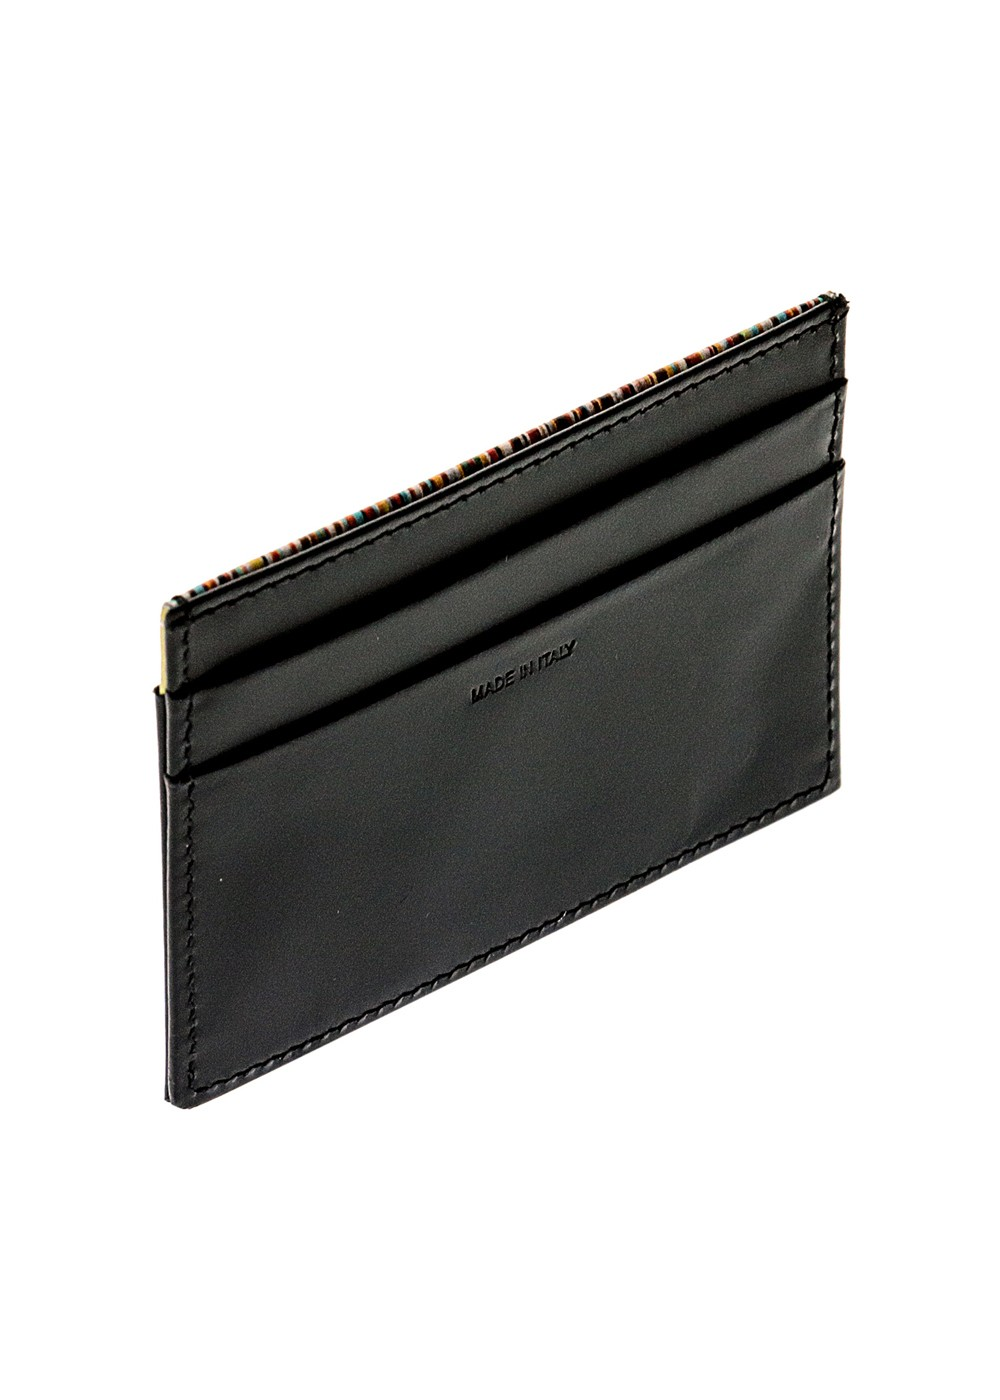 【最大50%OFF】【PAUL SMITH】カードケース|ブラック|カードケース|【週末限定】Special price ~ JIMMY CHOO / PAUL SMITH / EMPOLIO ARMANI ...etc~